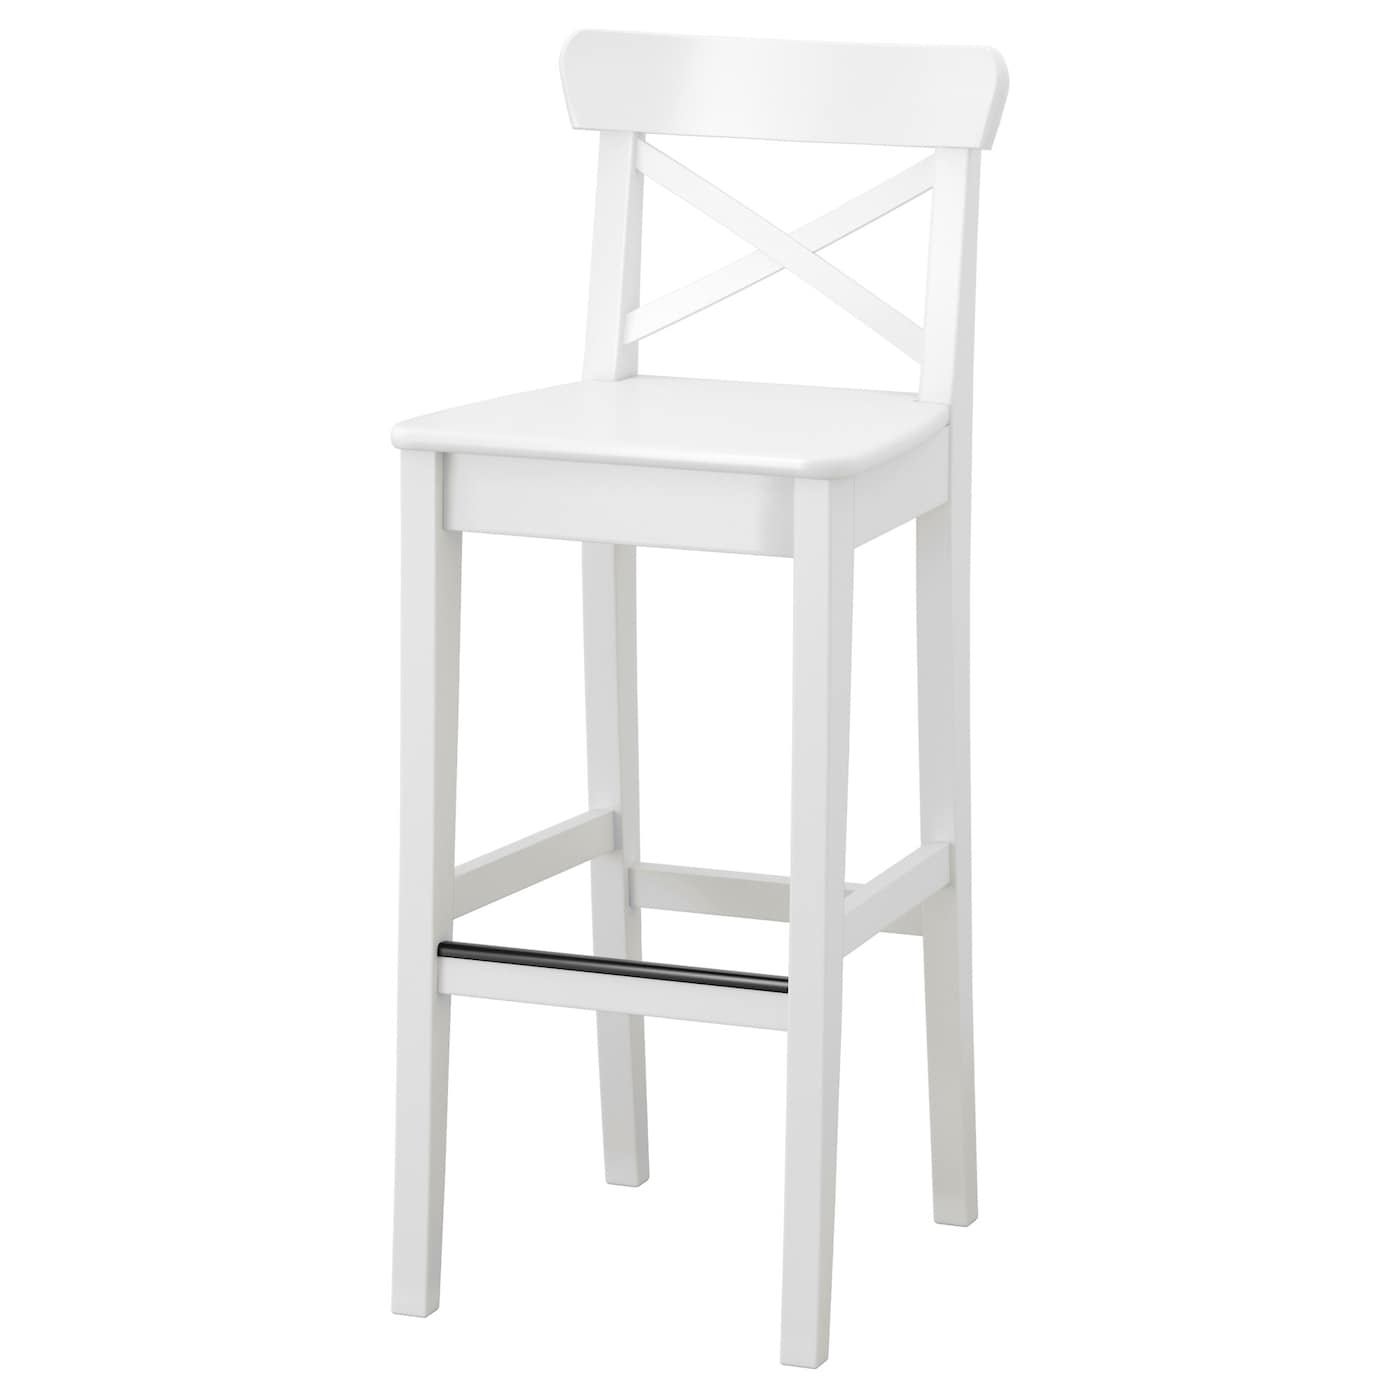 Ikea Ingolf Bar Stool With Backrest Footrest For Relaxed Sitting Posture